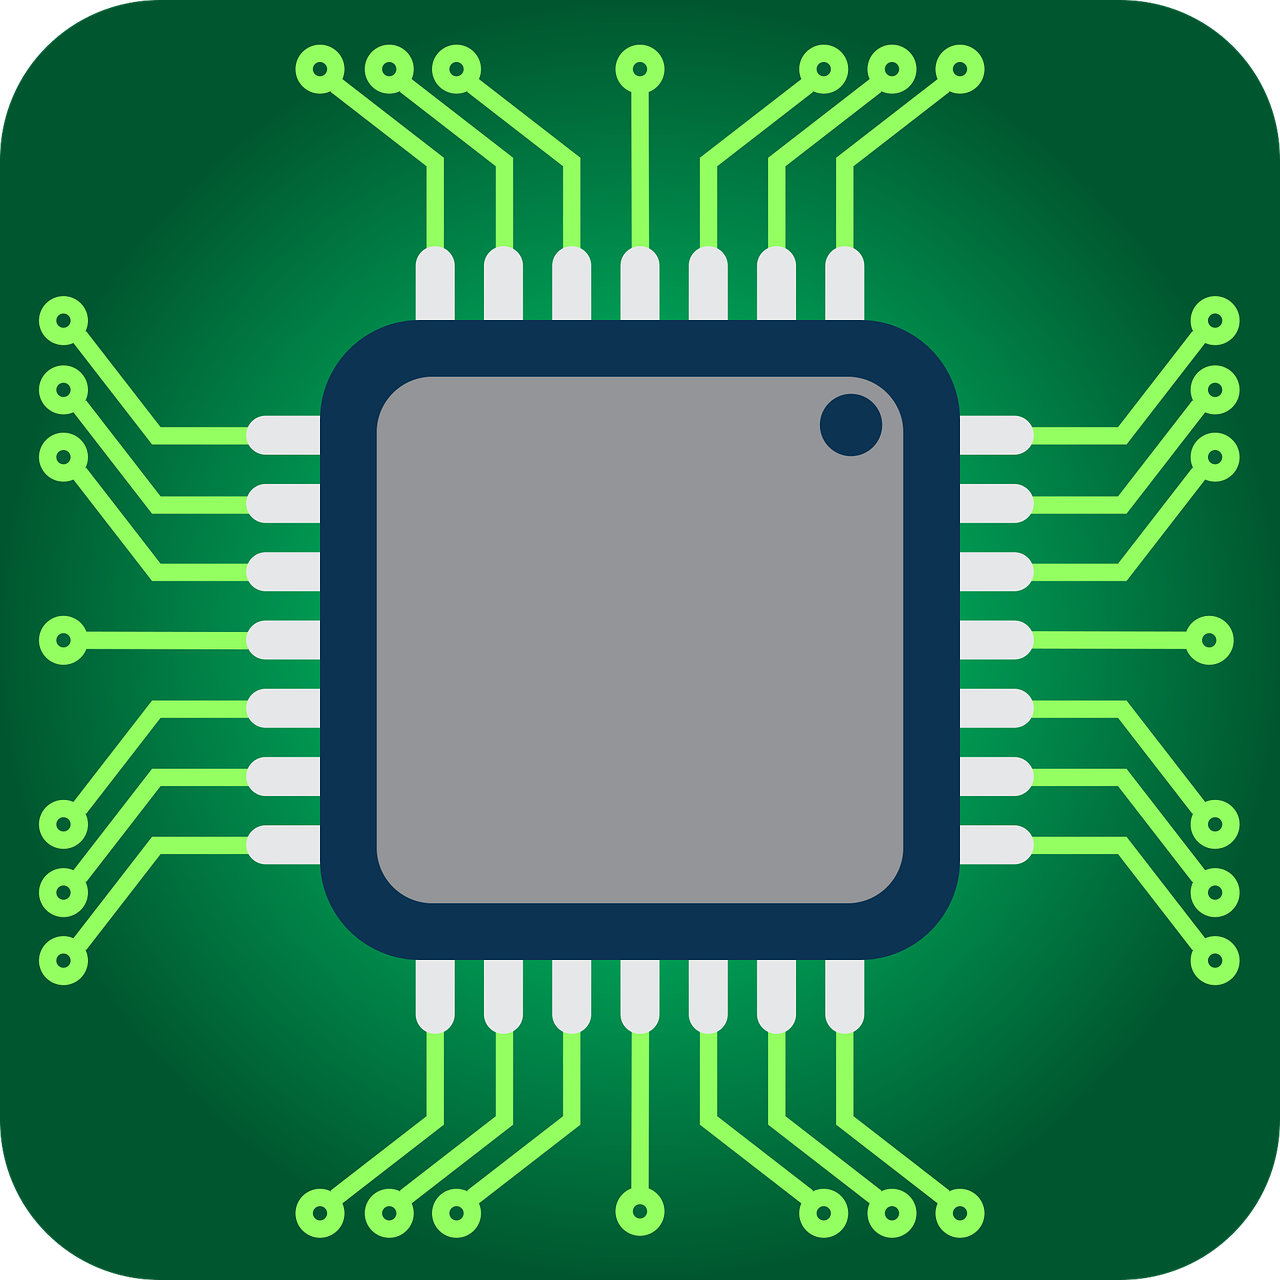 Chip independent tests